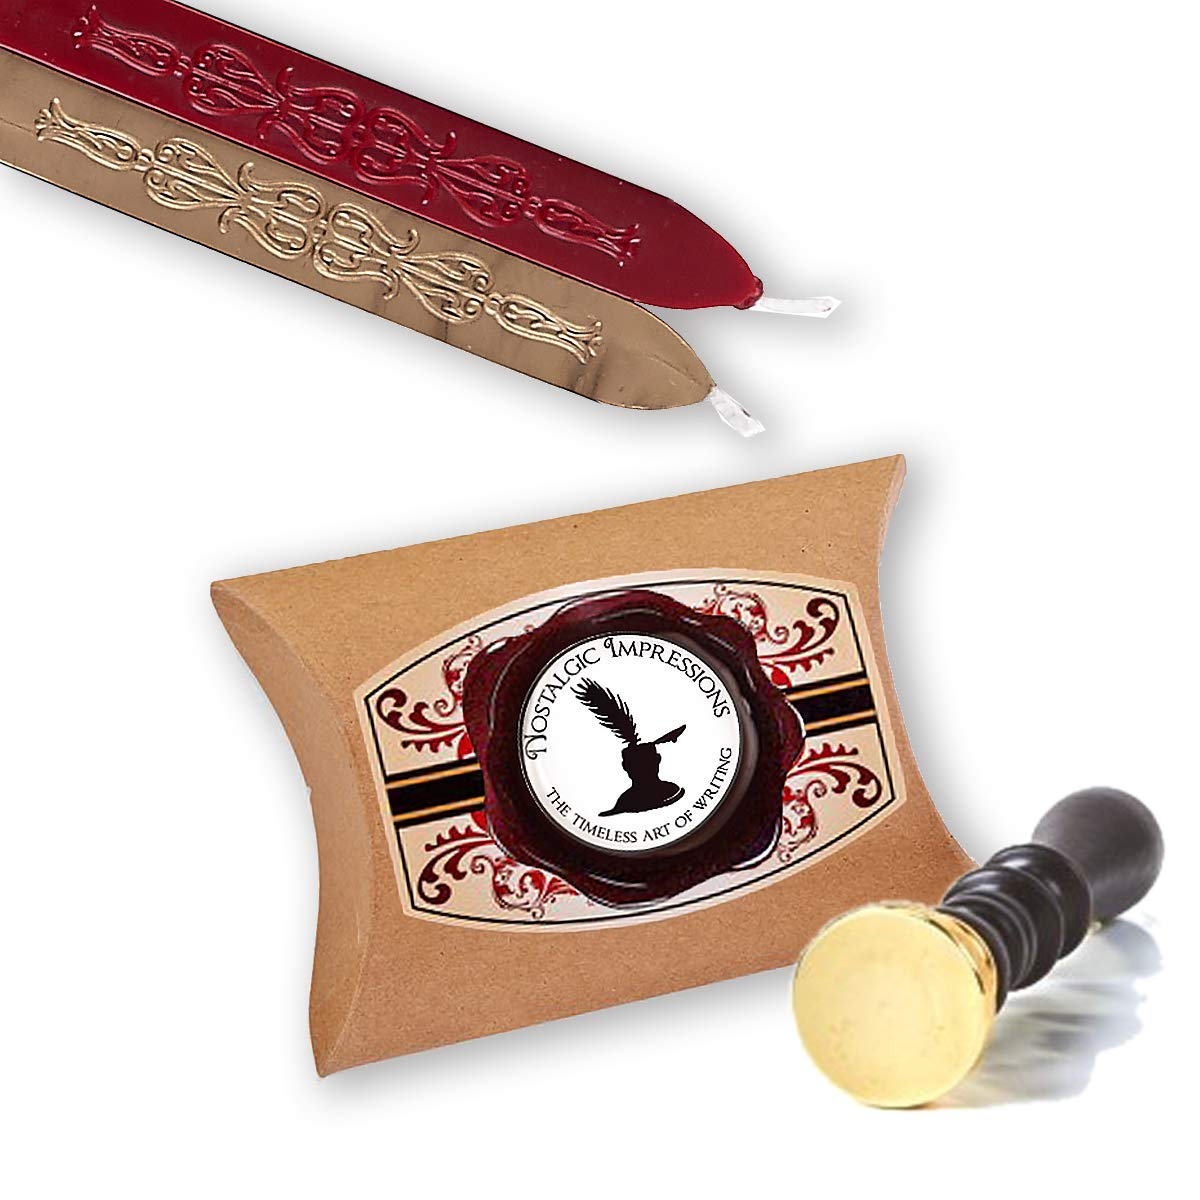 Wedding Custom Wax Seal Stamp Kit with Sealing Wax-1'' Die with 2 Letter Monogram by Nostalgic Impressions